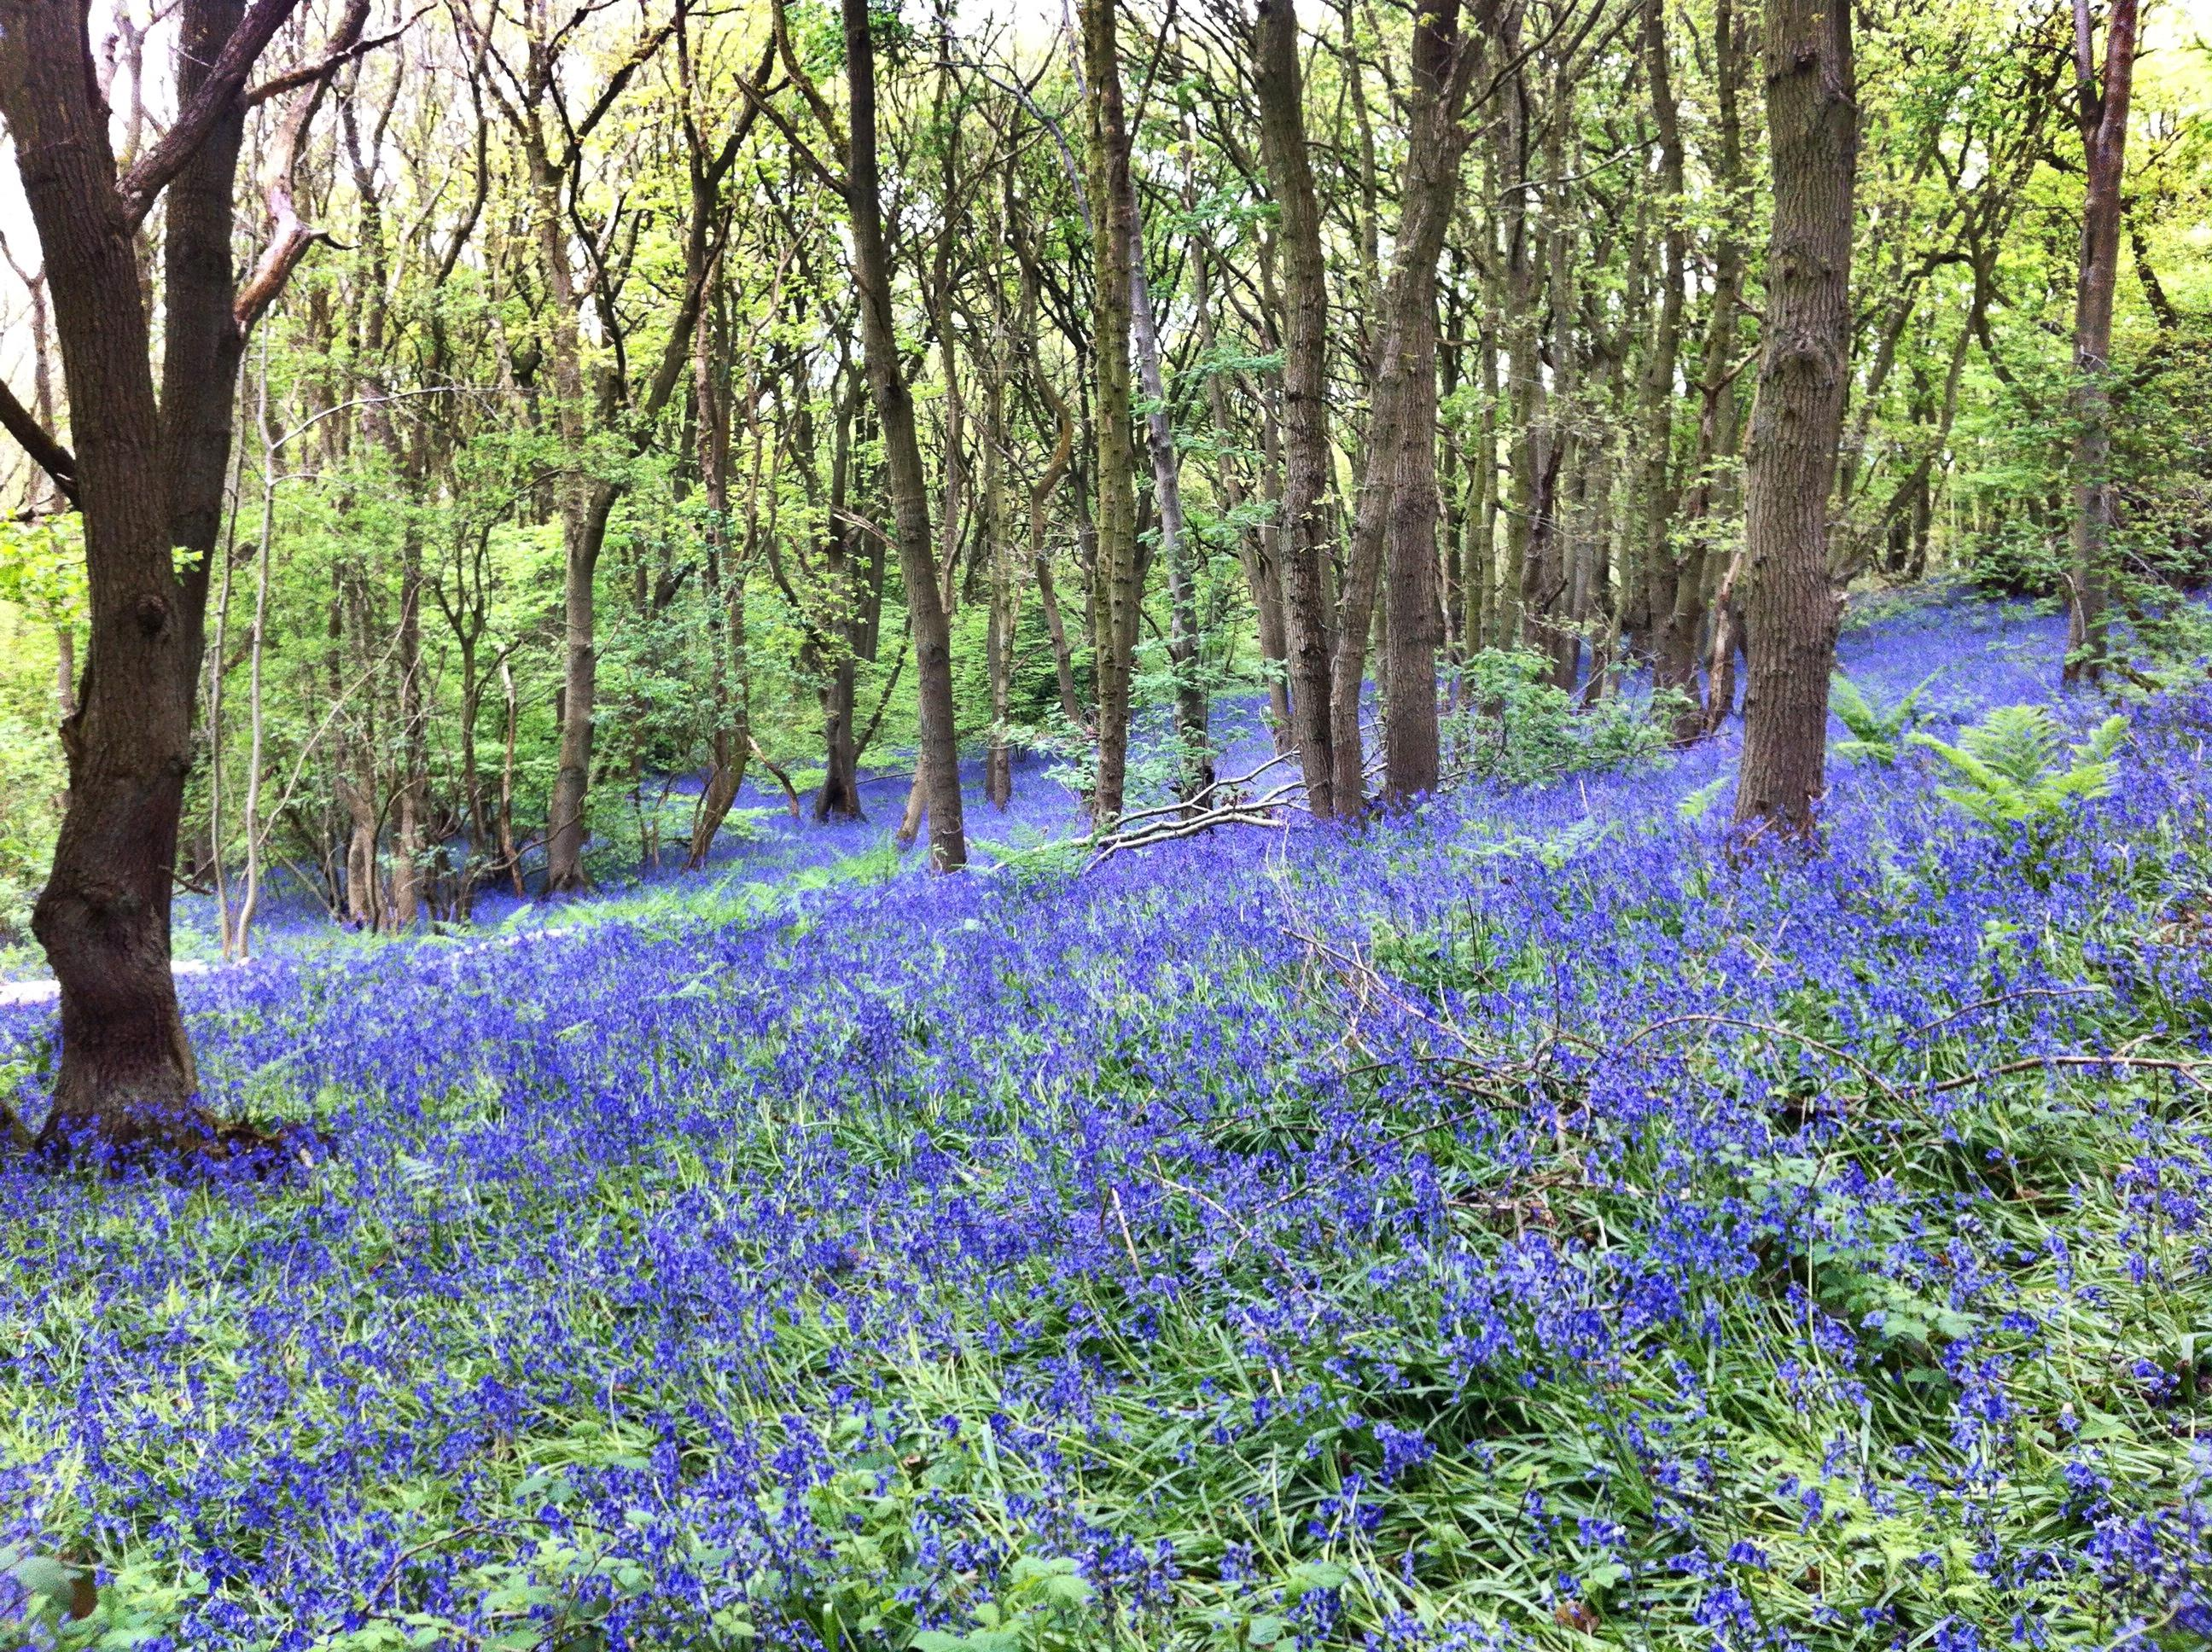 Photograph by Paul Conneally of bluebells in an English wood 2017 Loughbohemia some call it Loughborough